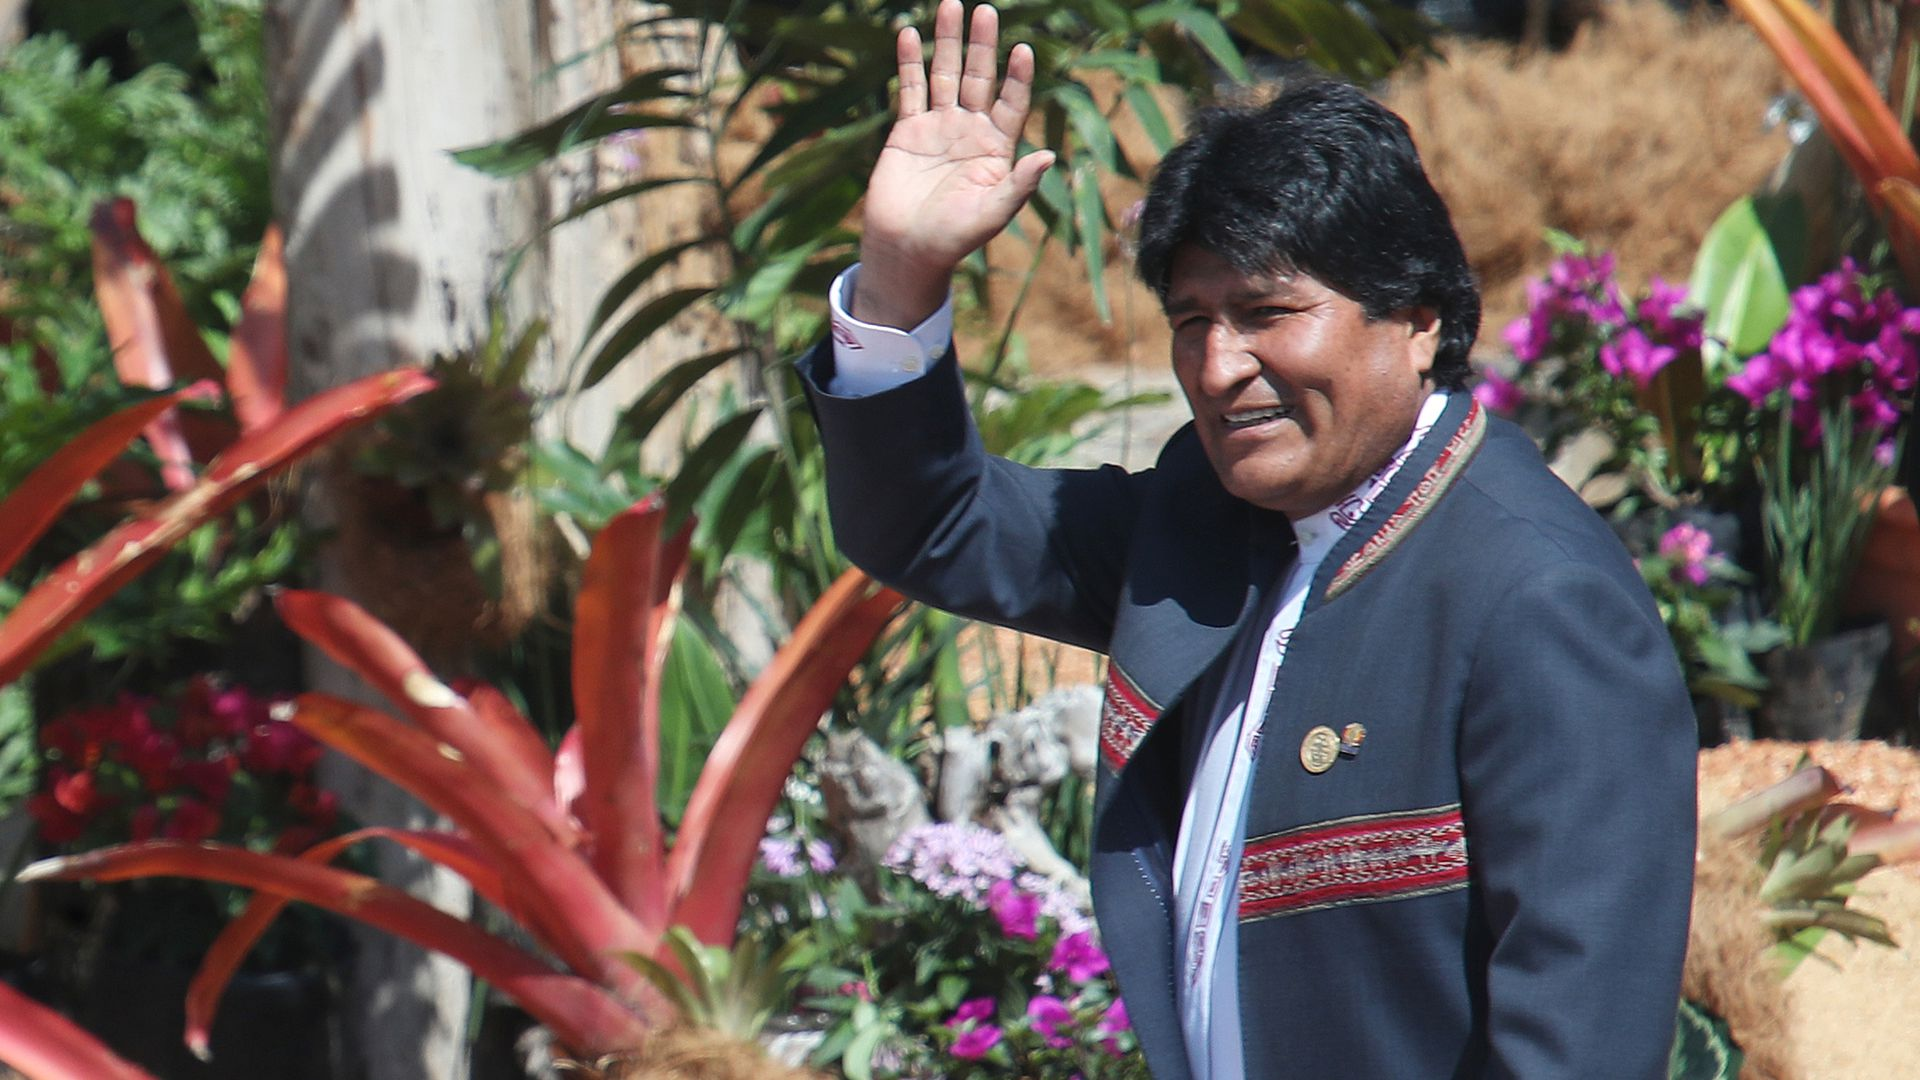 Bolivia's election mystery: Vote tallies stop with Morales facing runoff